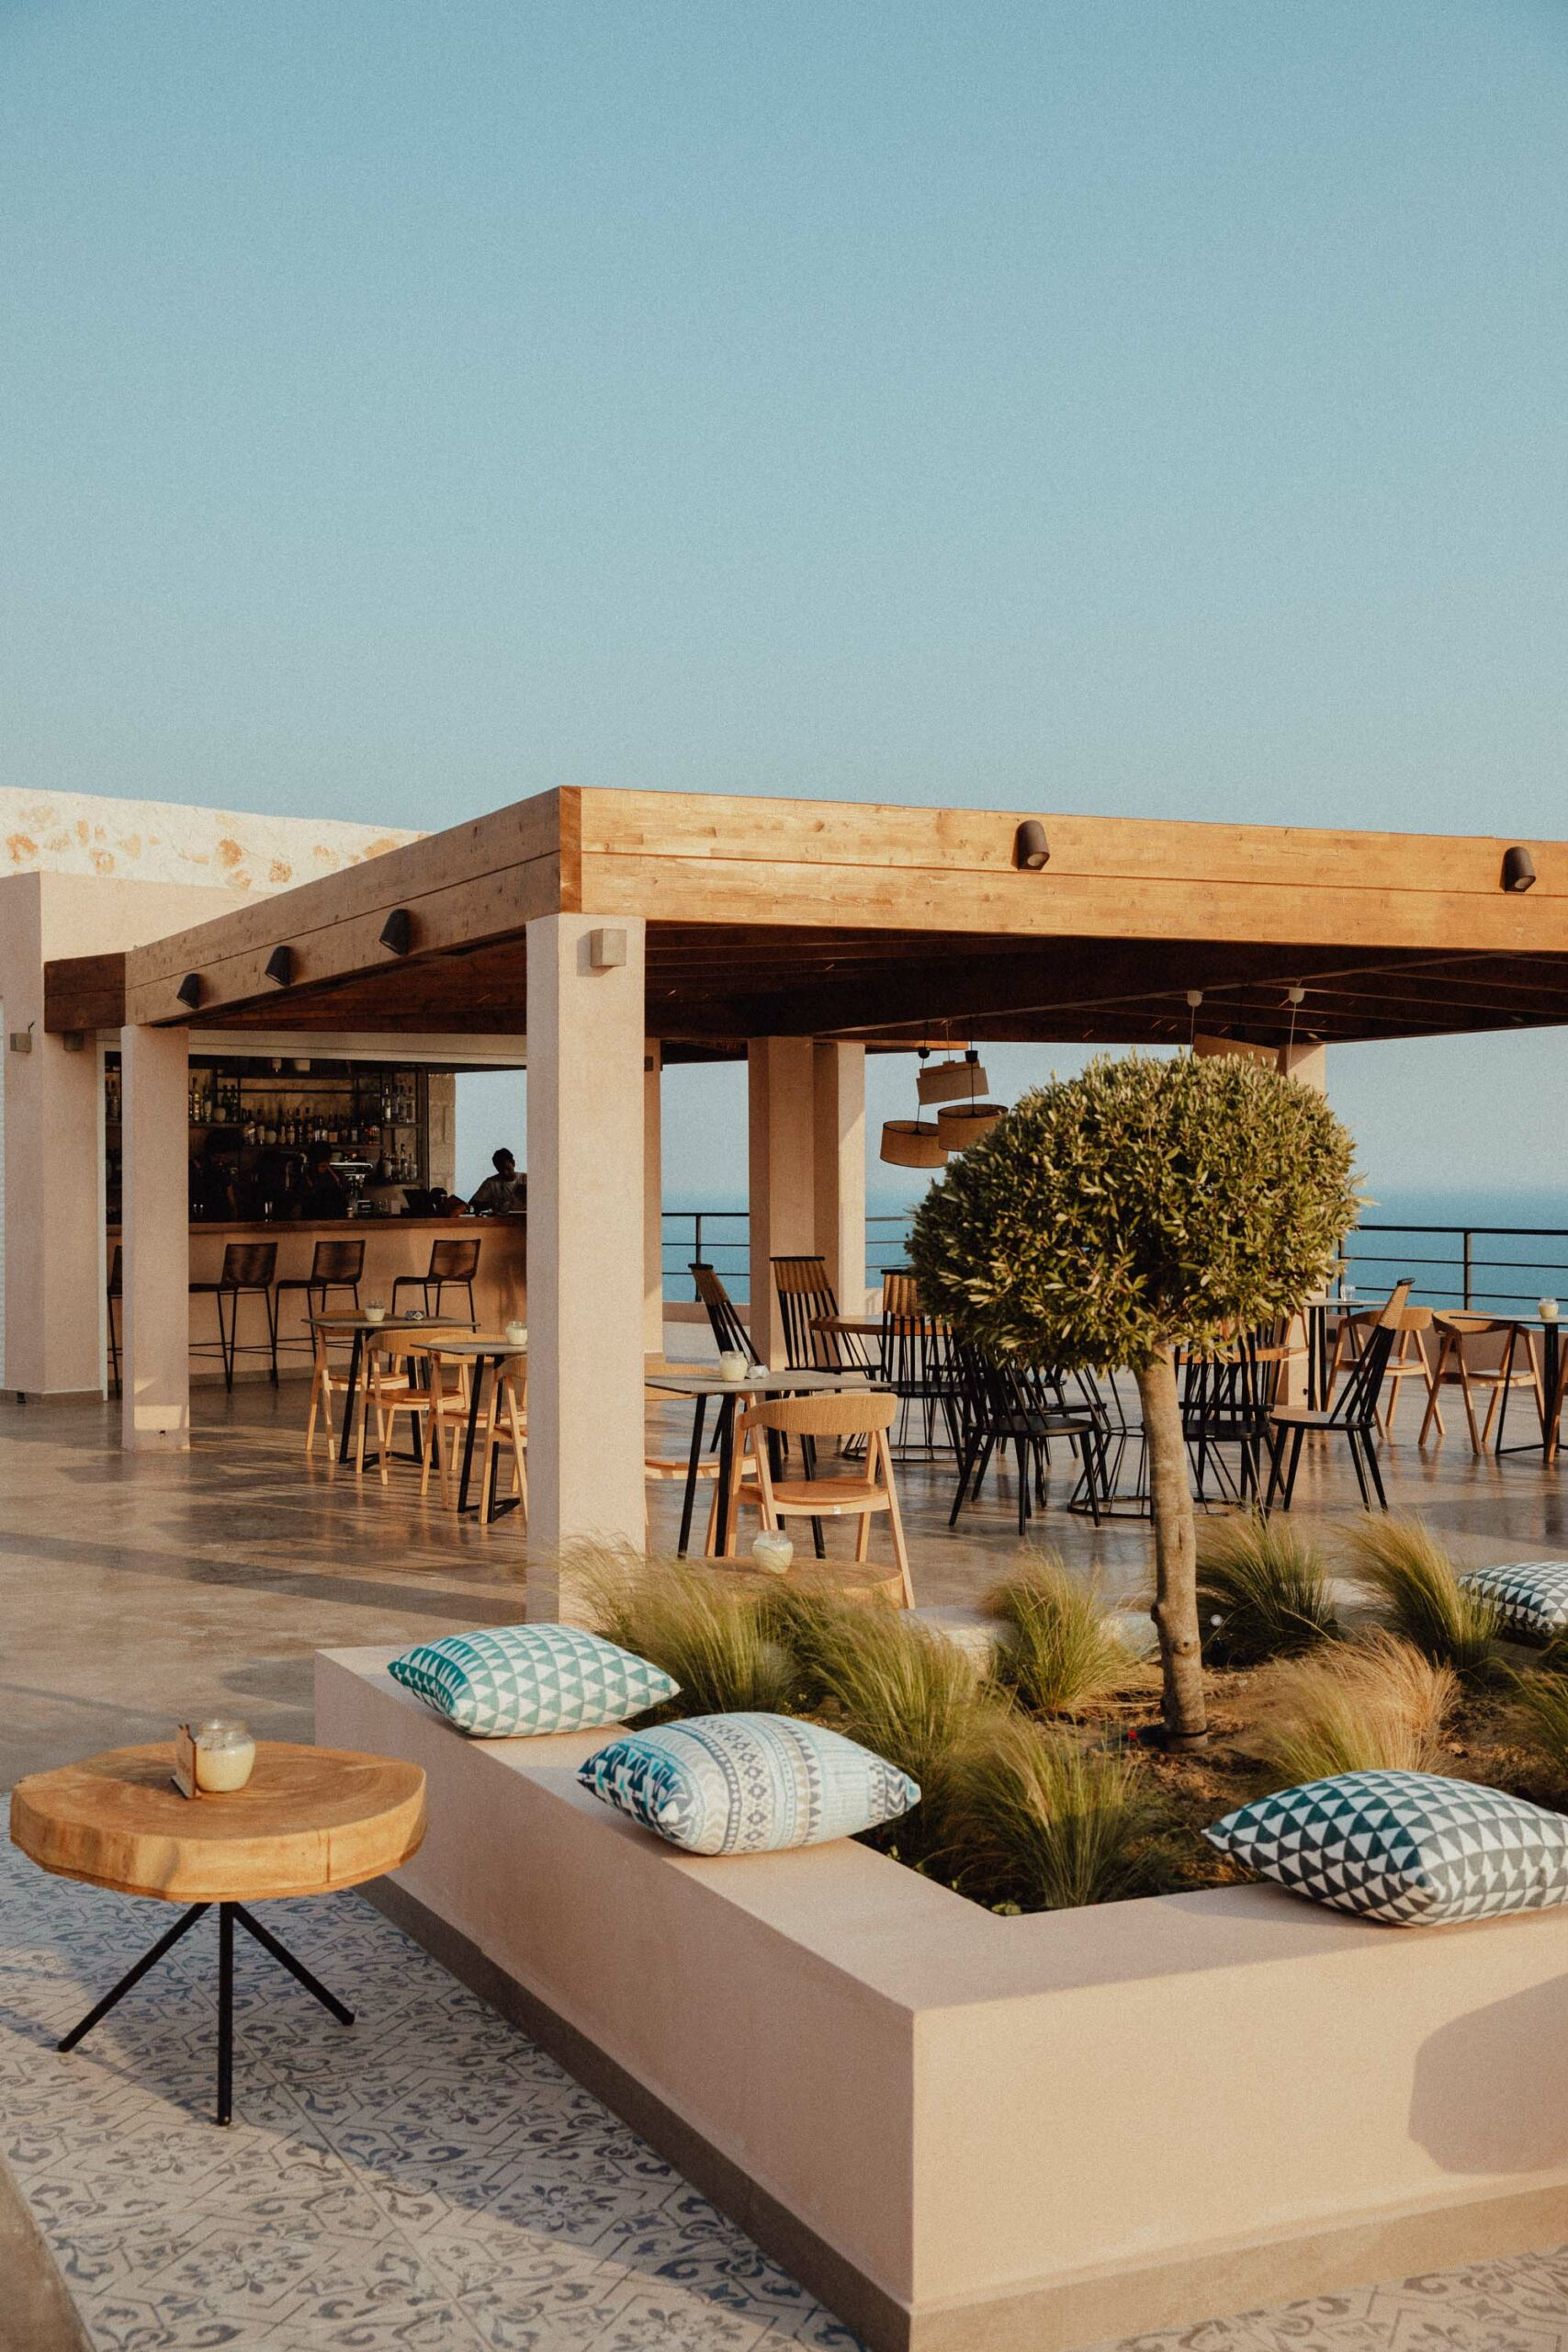 L'ete sunset bar for views of the ocean in Zakynthos Greece